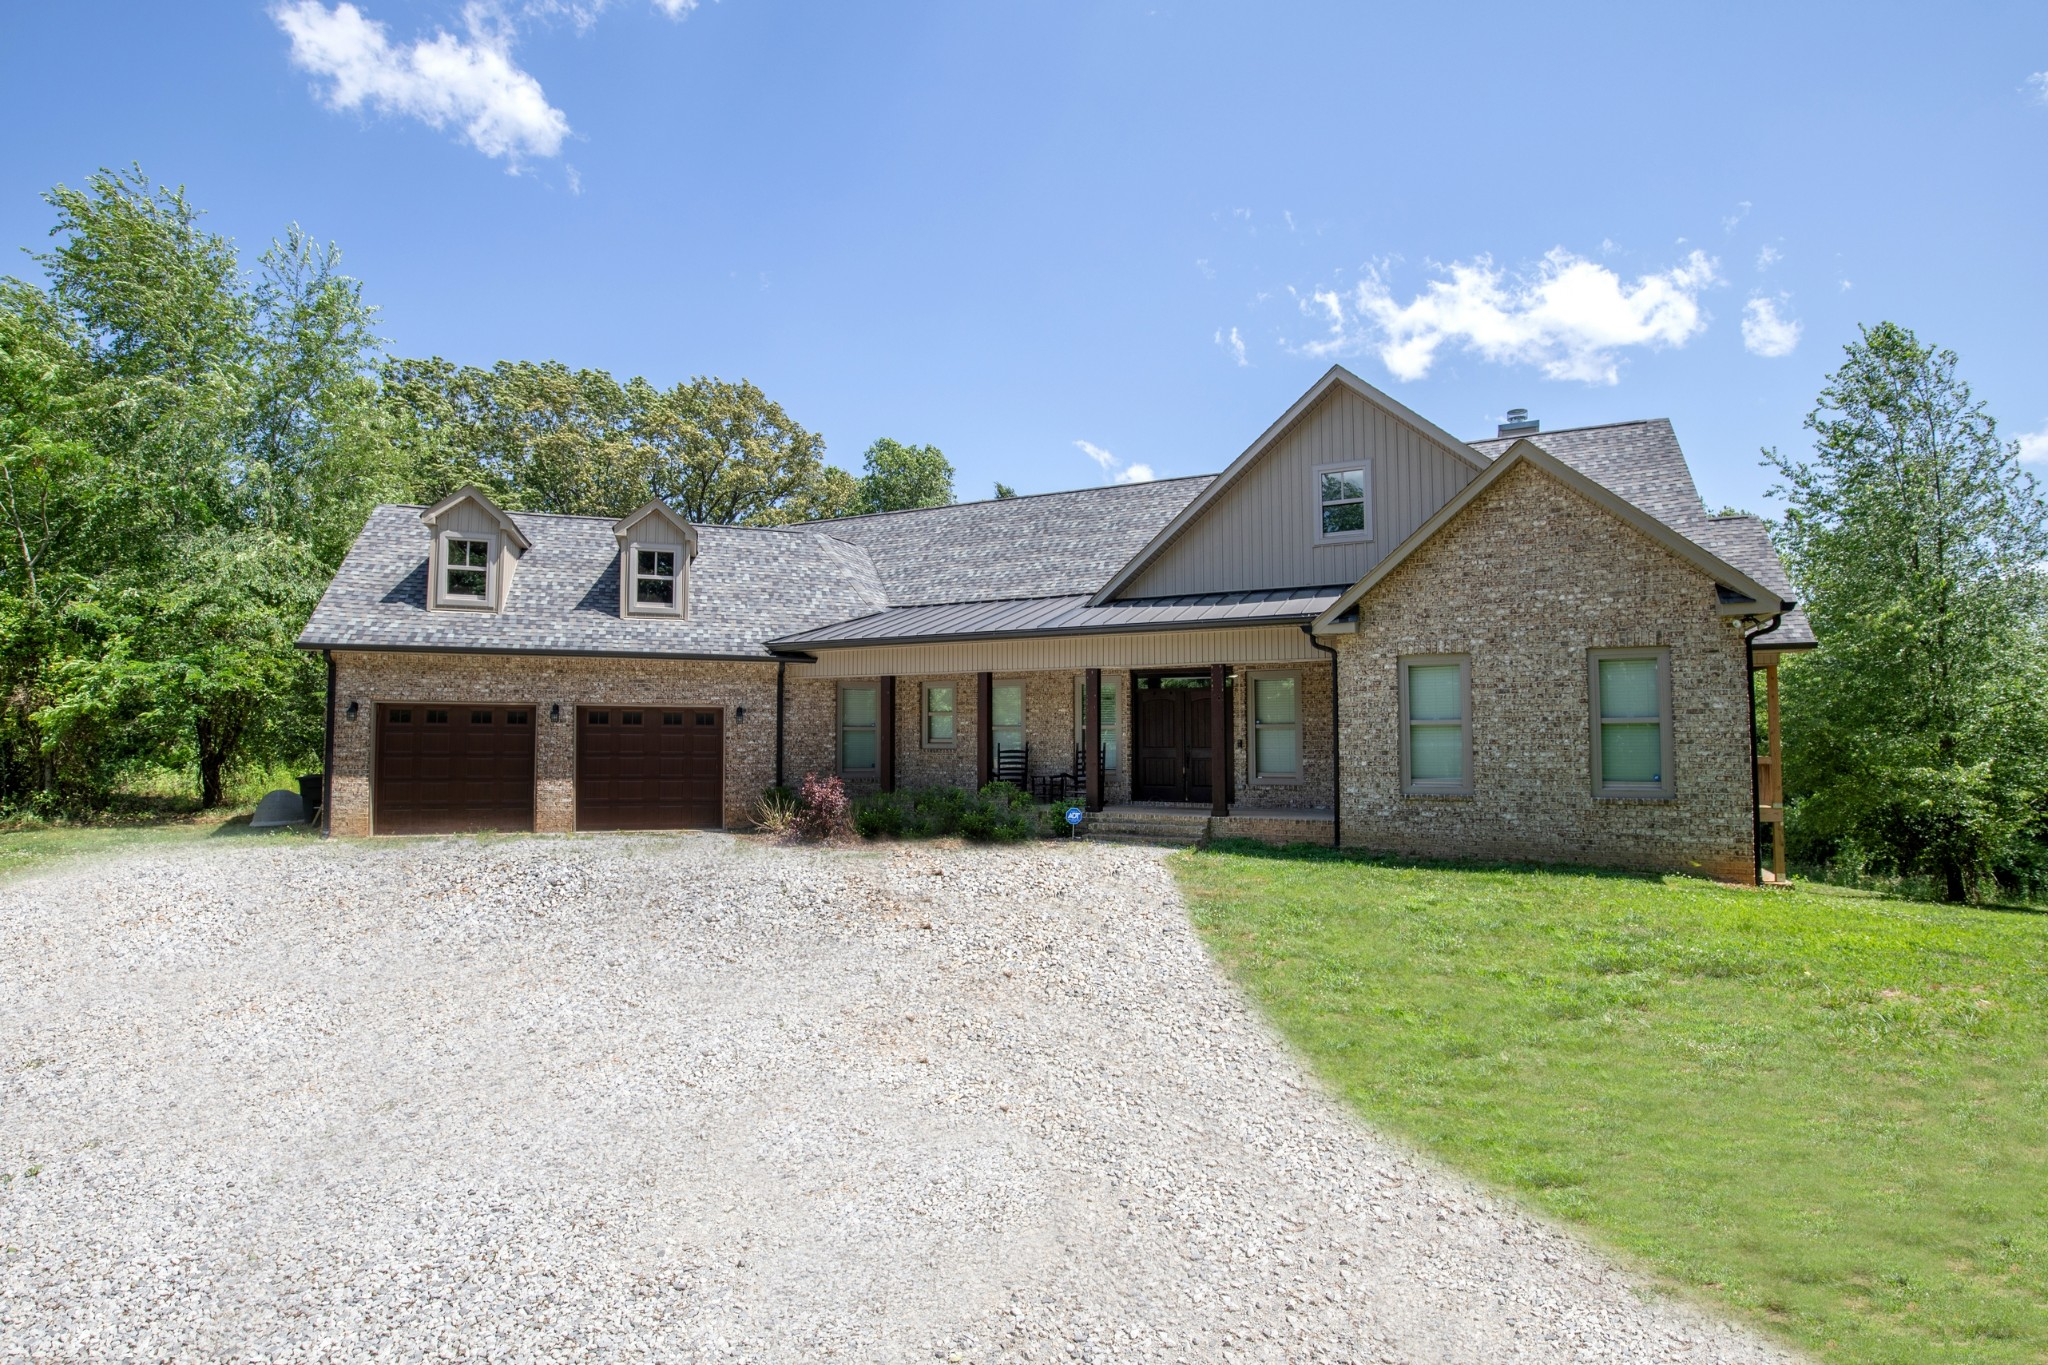 6153 S Lamont Rd Property Photo - Springfield, TN real estate listing